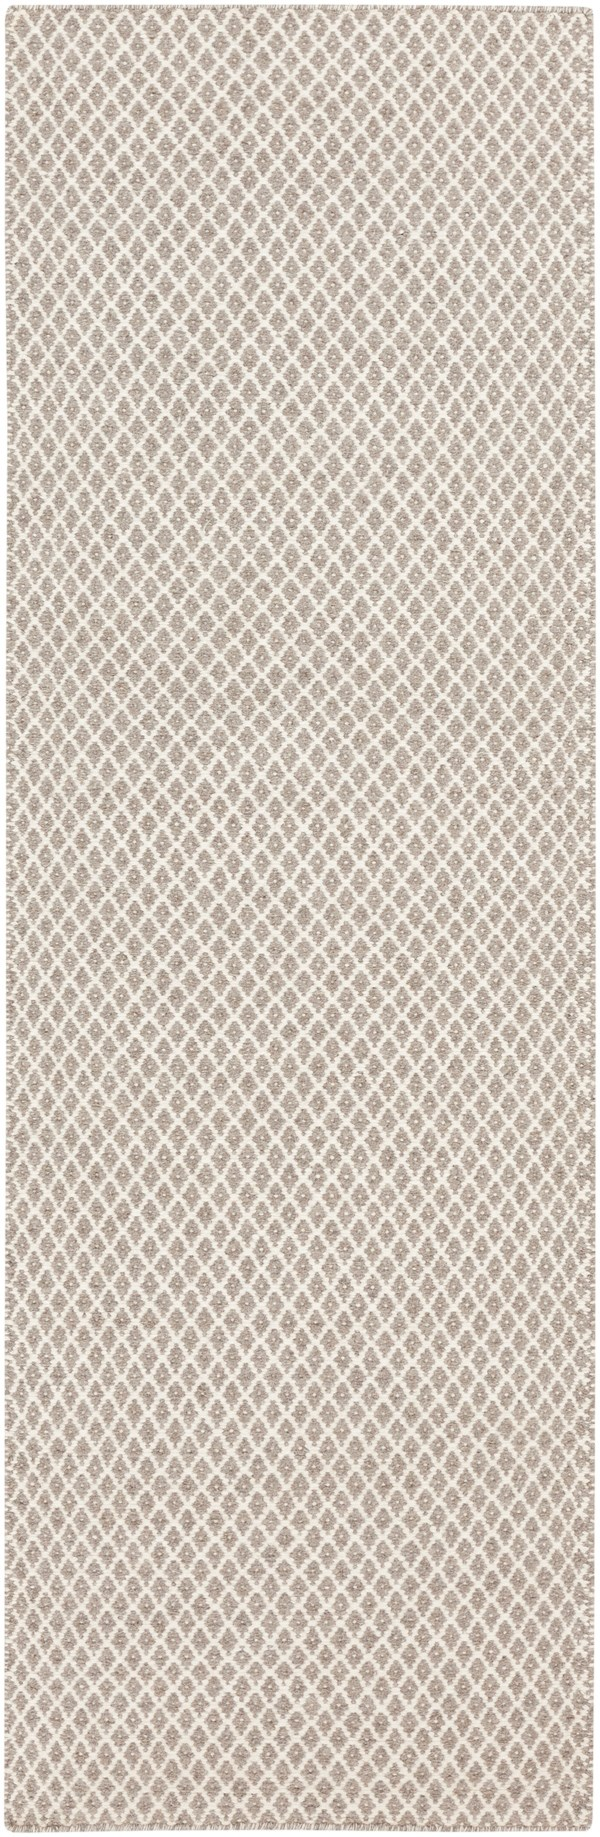 Taupe, Ivory Casual Area Rug